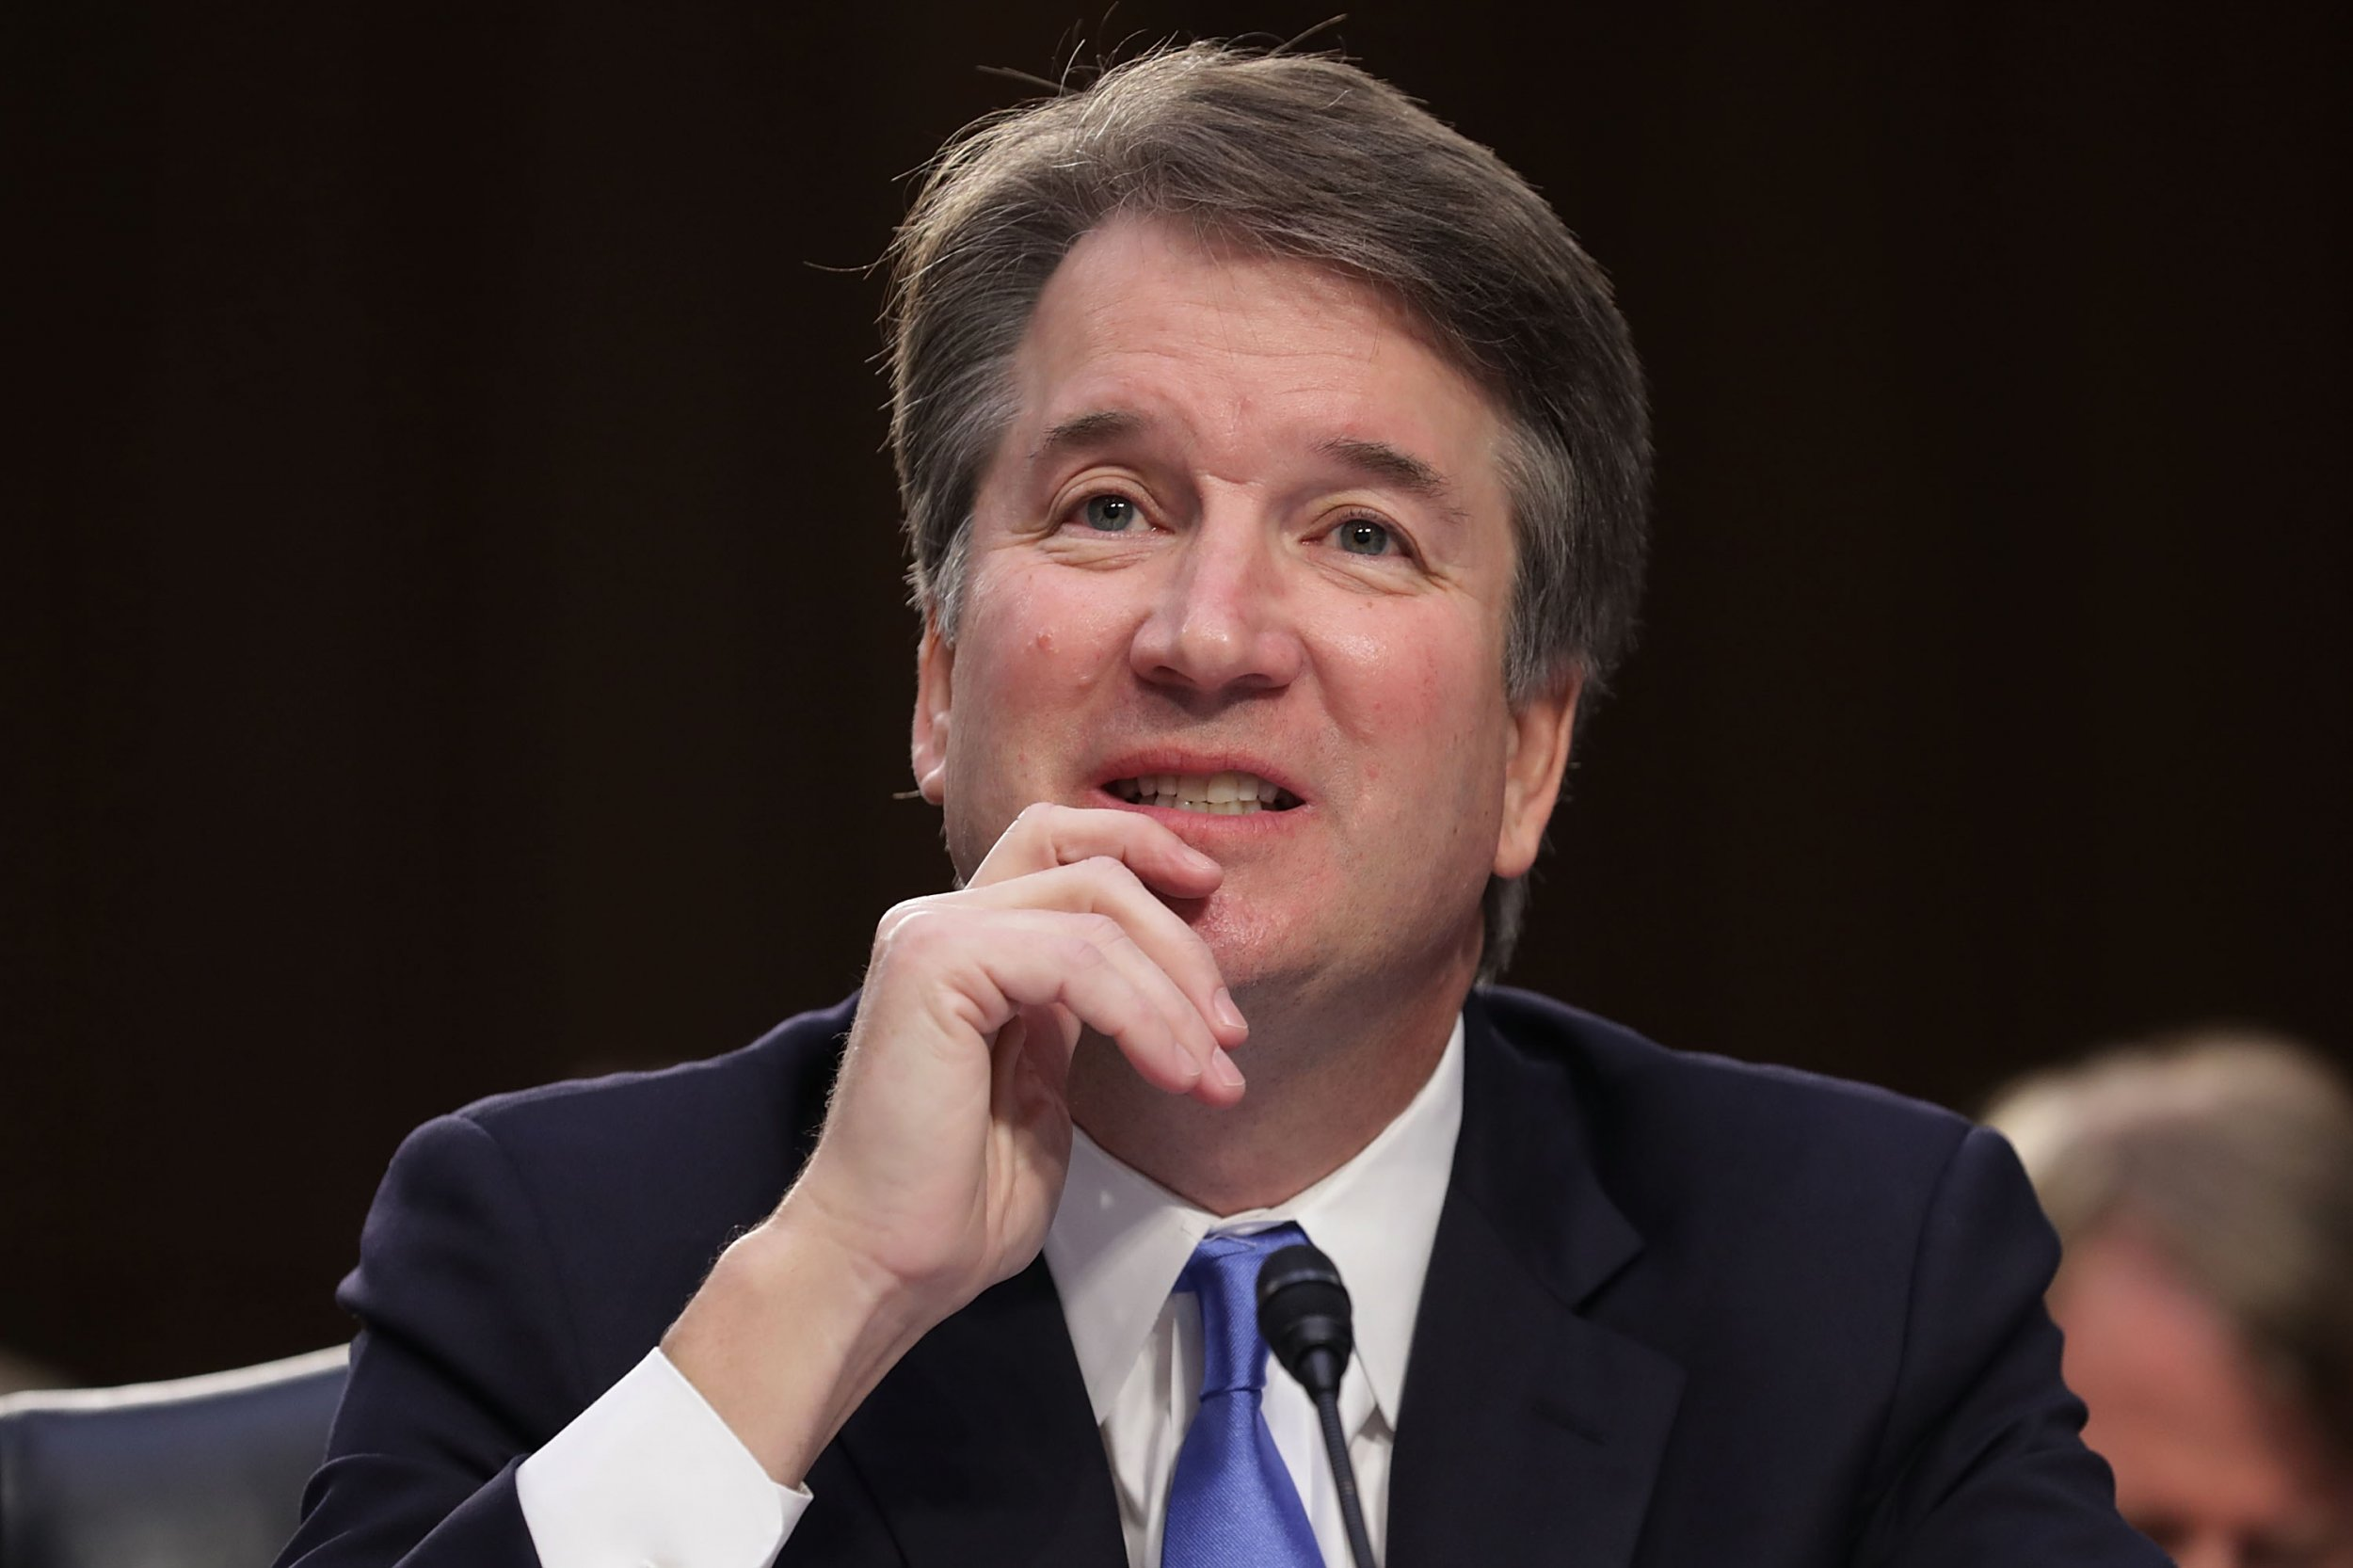 Brett Kavanaugh Suggests Roe v Wade Can be Overturned in Leaked Emails